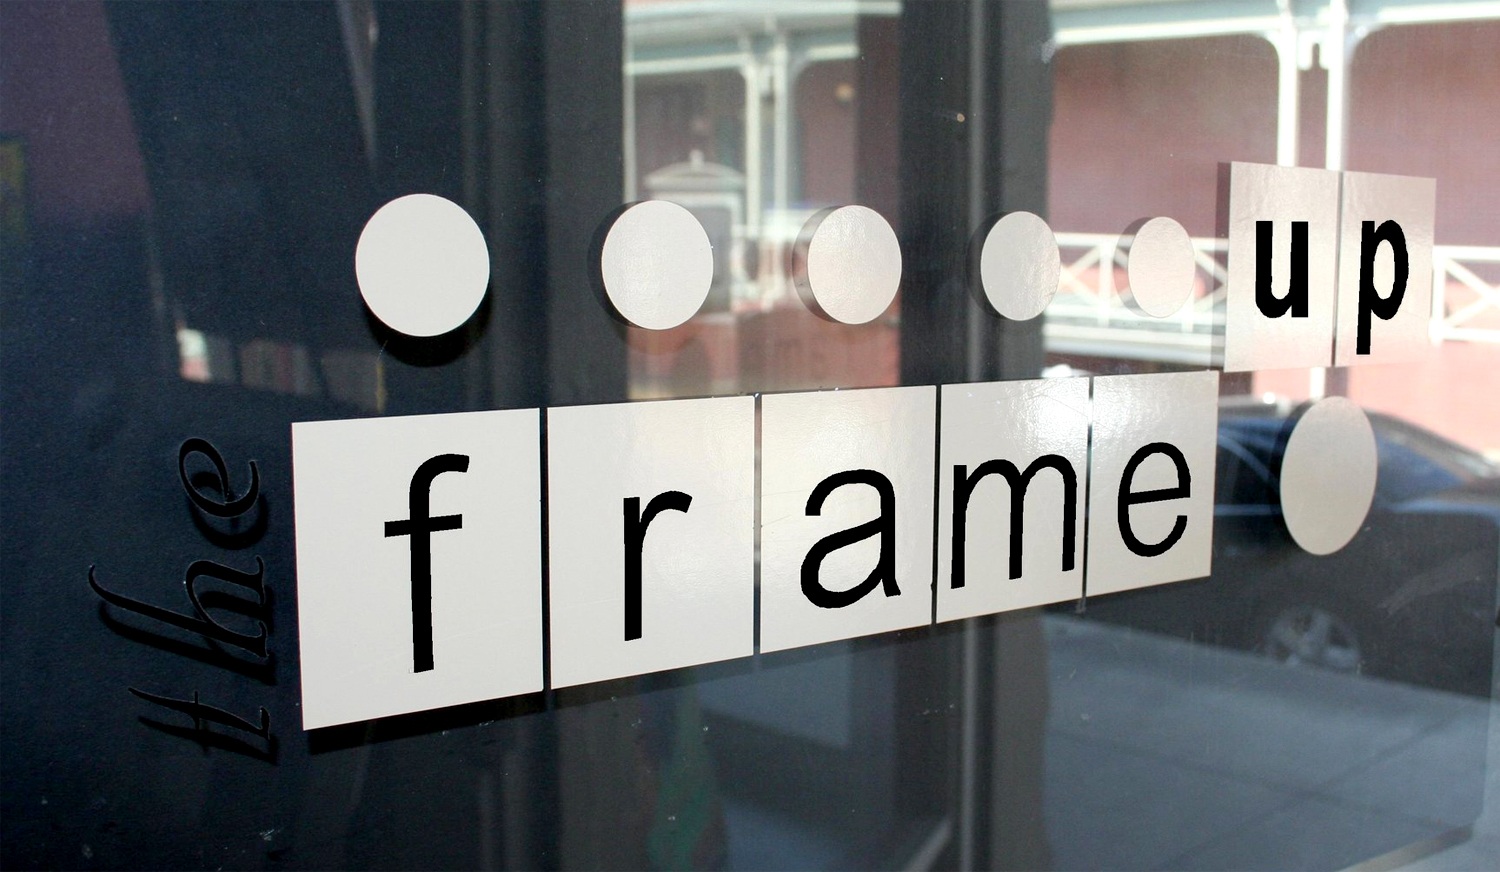 The Frame Up/Basement Gallery is located at 125 Courthouse Square. Photo courtesy of The Frame Up/Basement Gallery/Facebook